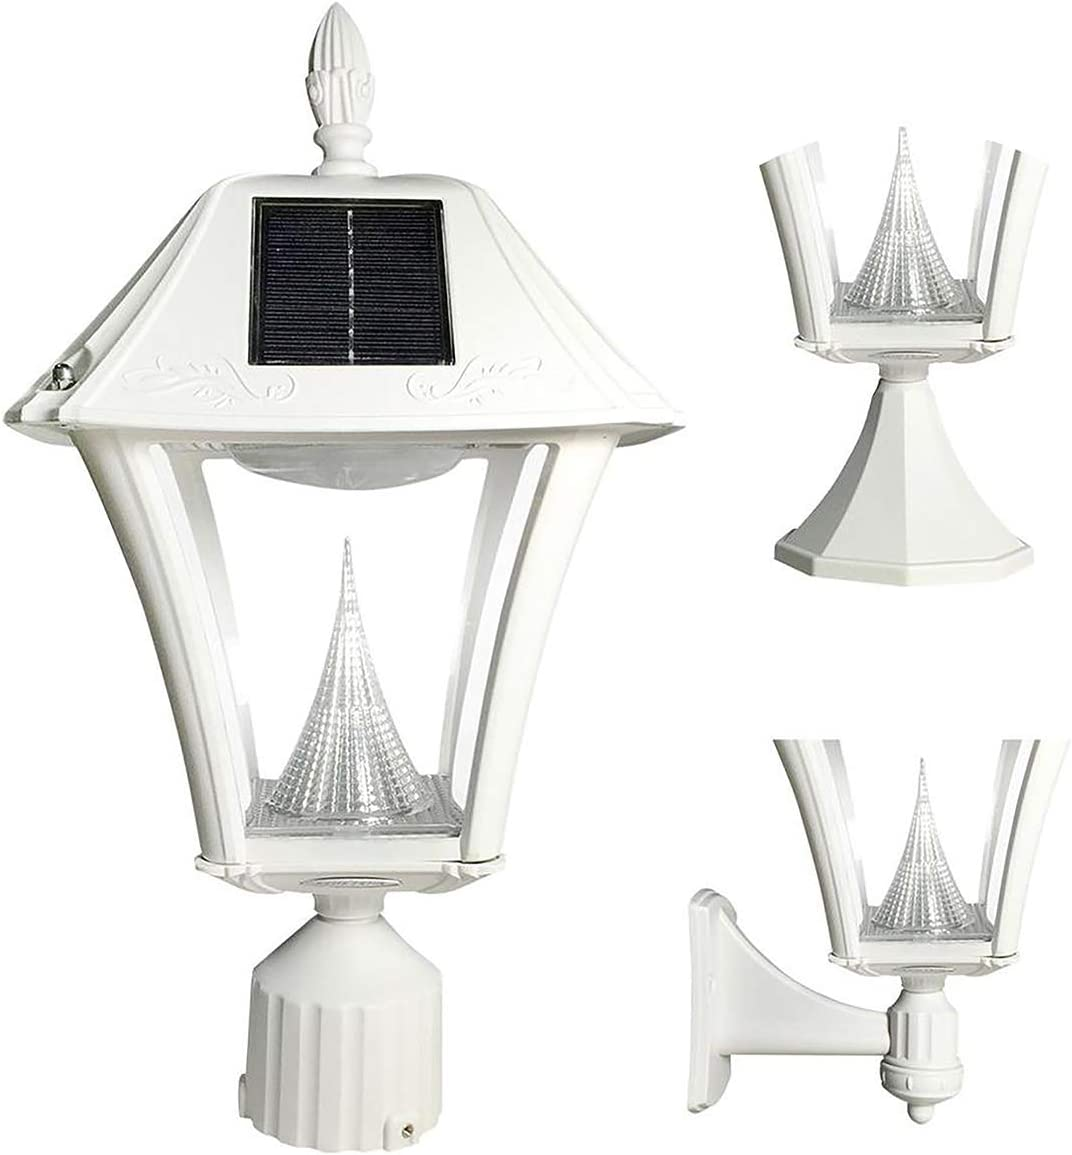 Gama Sonic GS-105FPW-W-WW Baytown II Lamp Outdoor Solar Light Fixture, Pole Pier Wall Mount Kits, White Finish